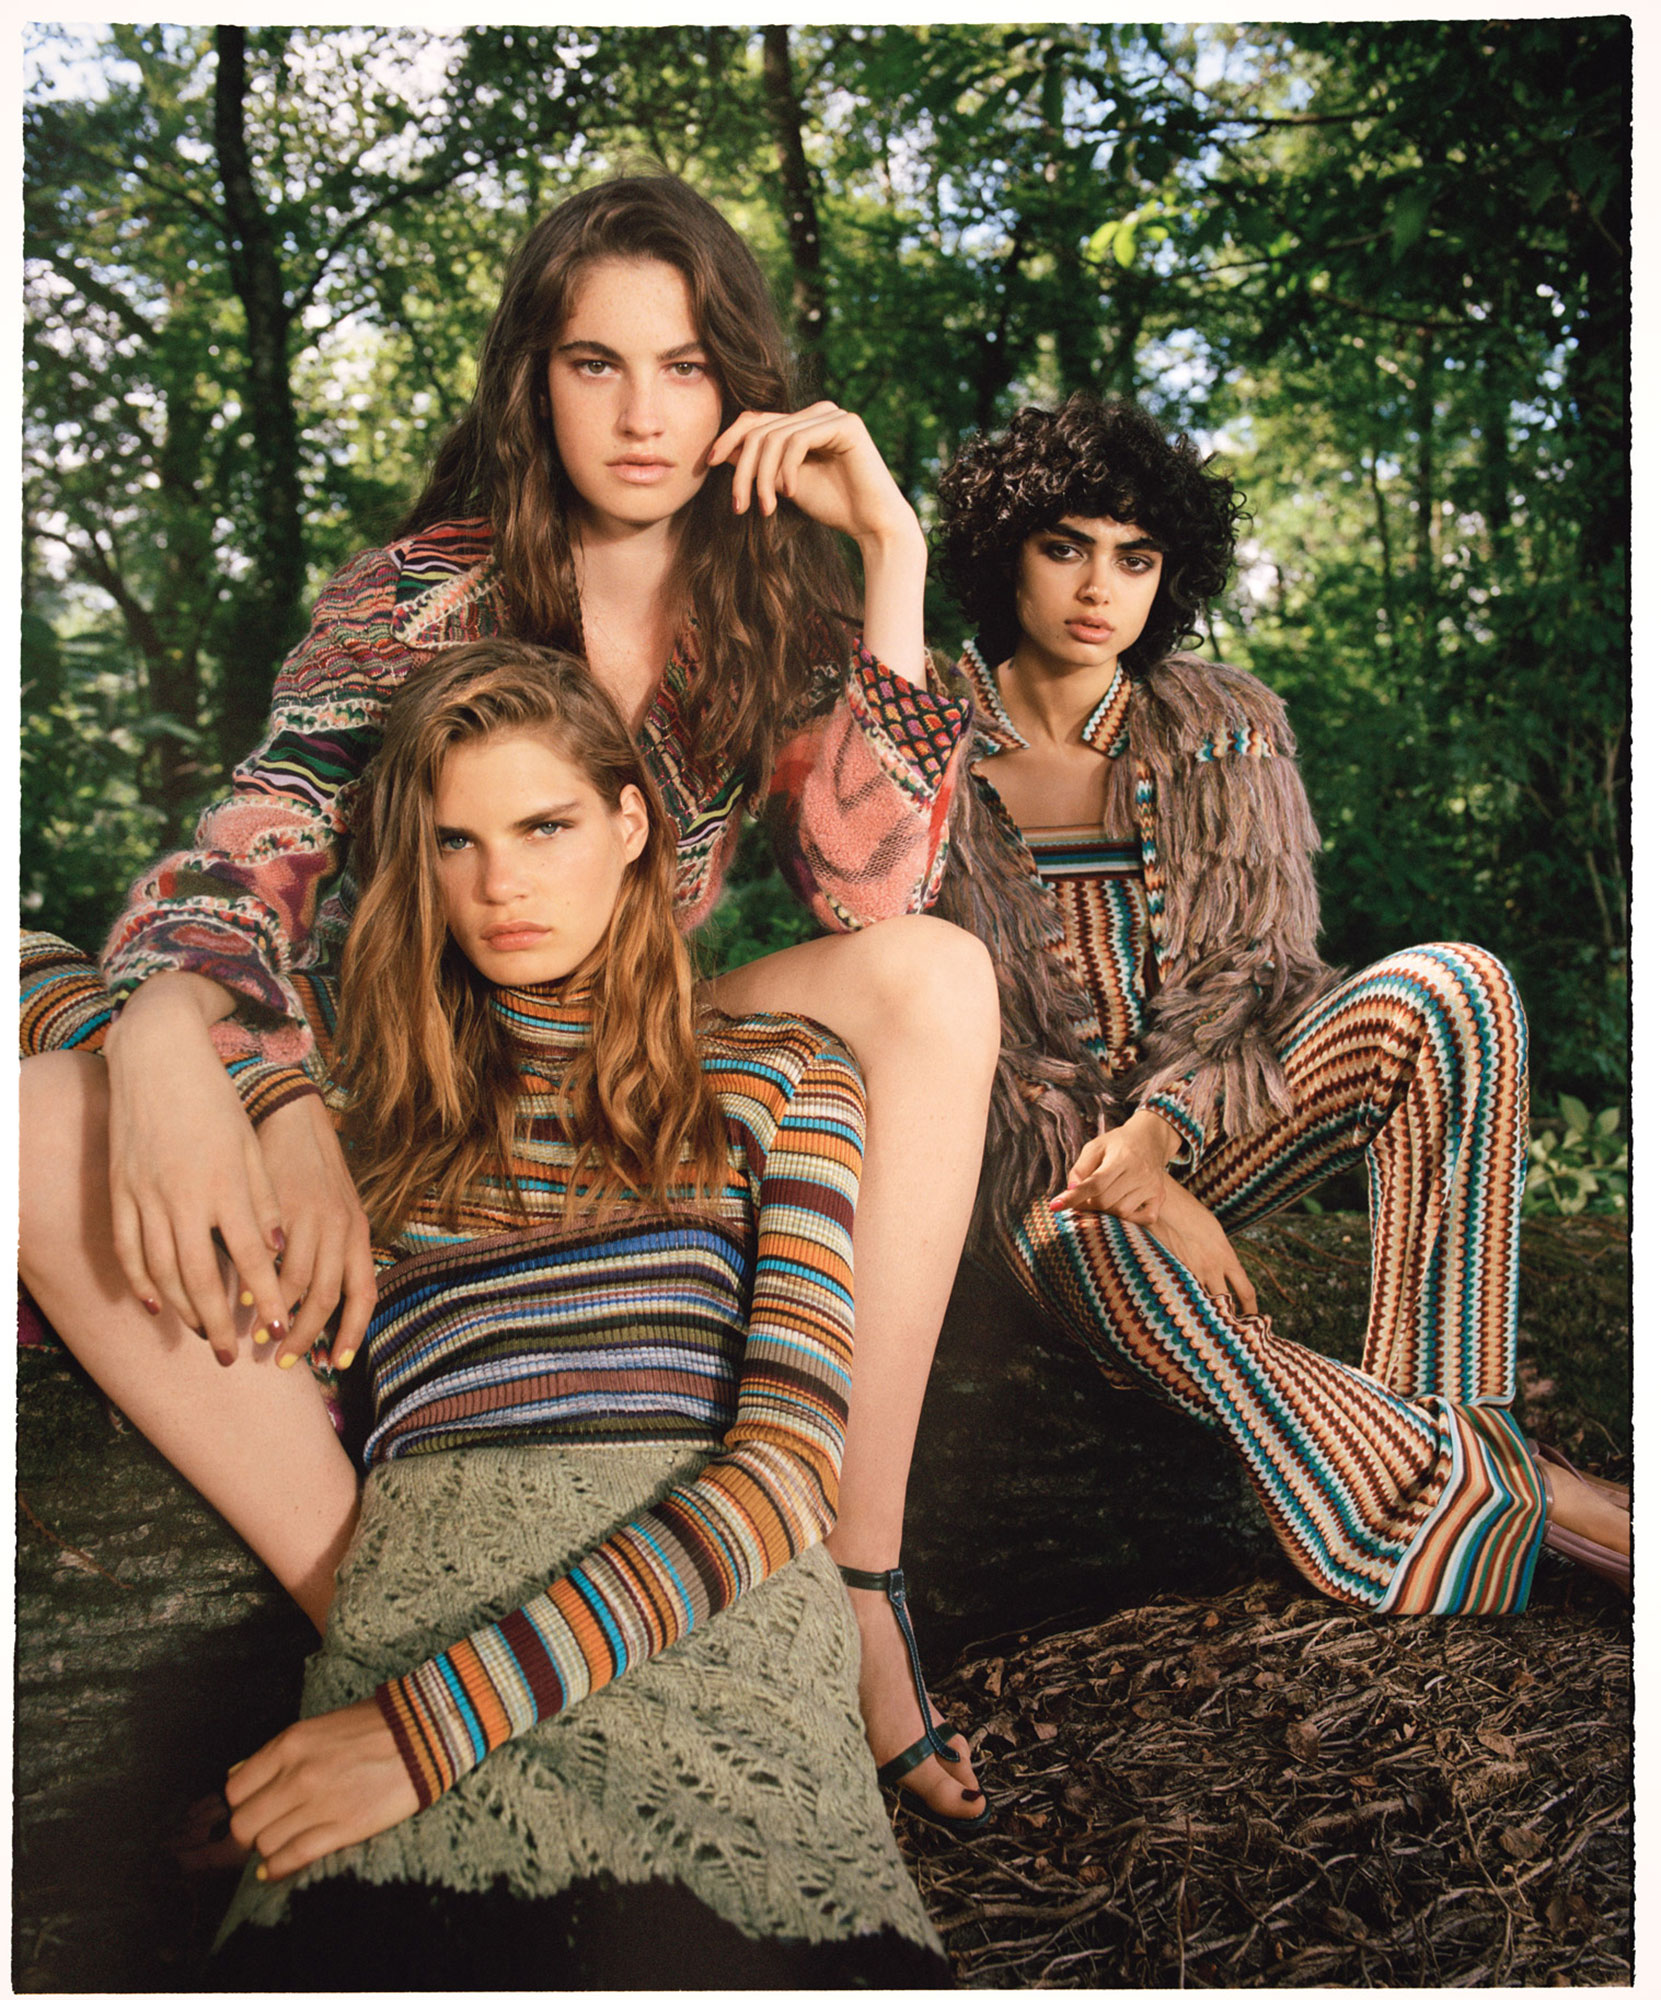 Maison Missoni, September 2017 | Antonio Monfreda & Daniel Regan | Missoni | Enrica Ponzellini | Numerique Retouch Photo Retouching Studio